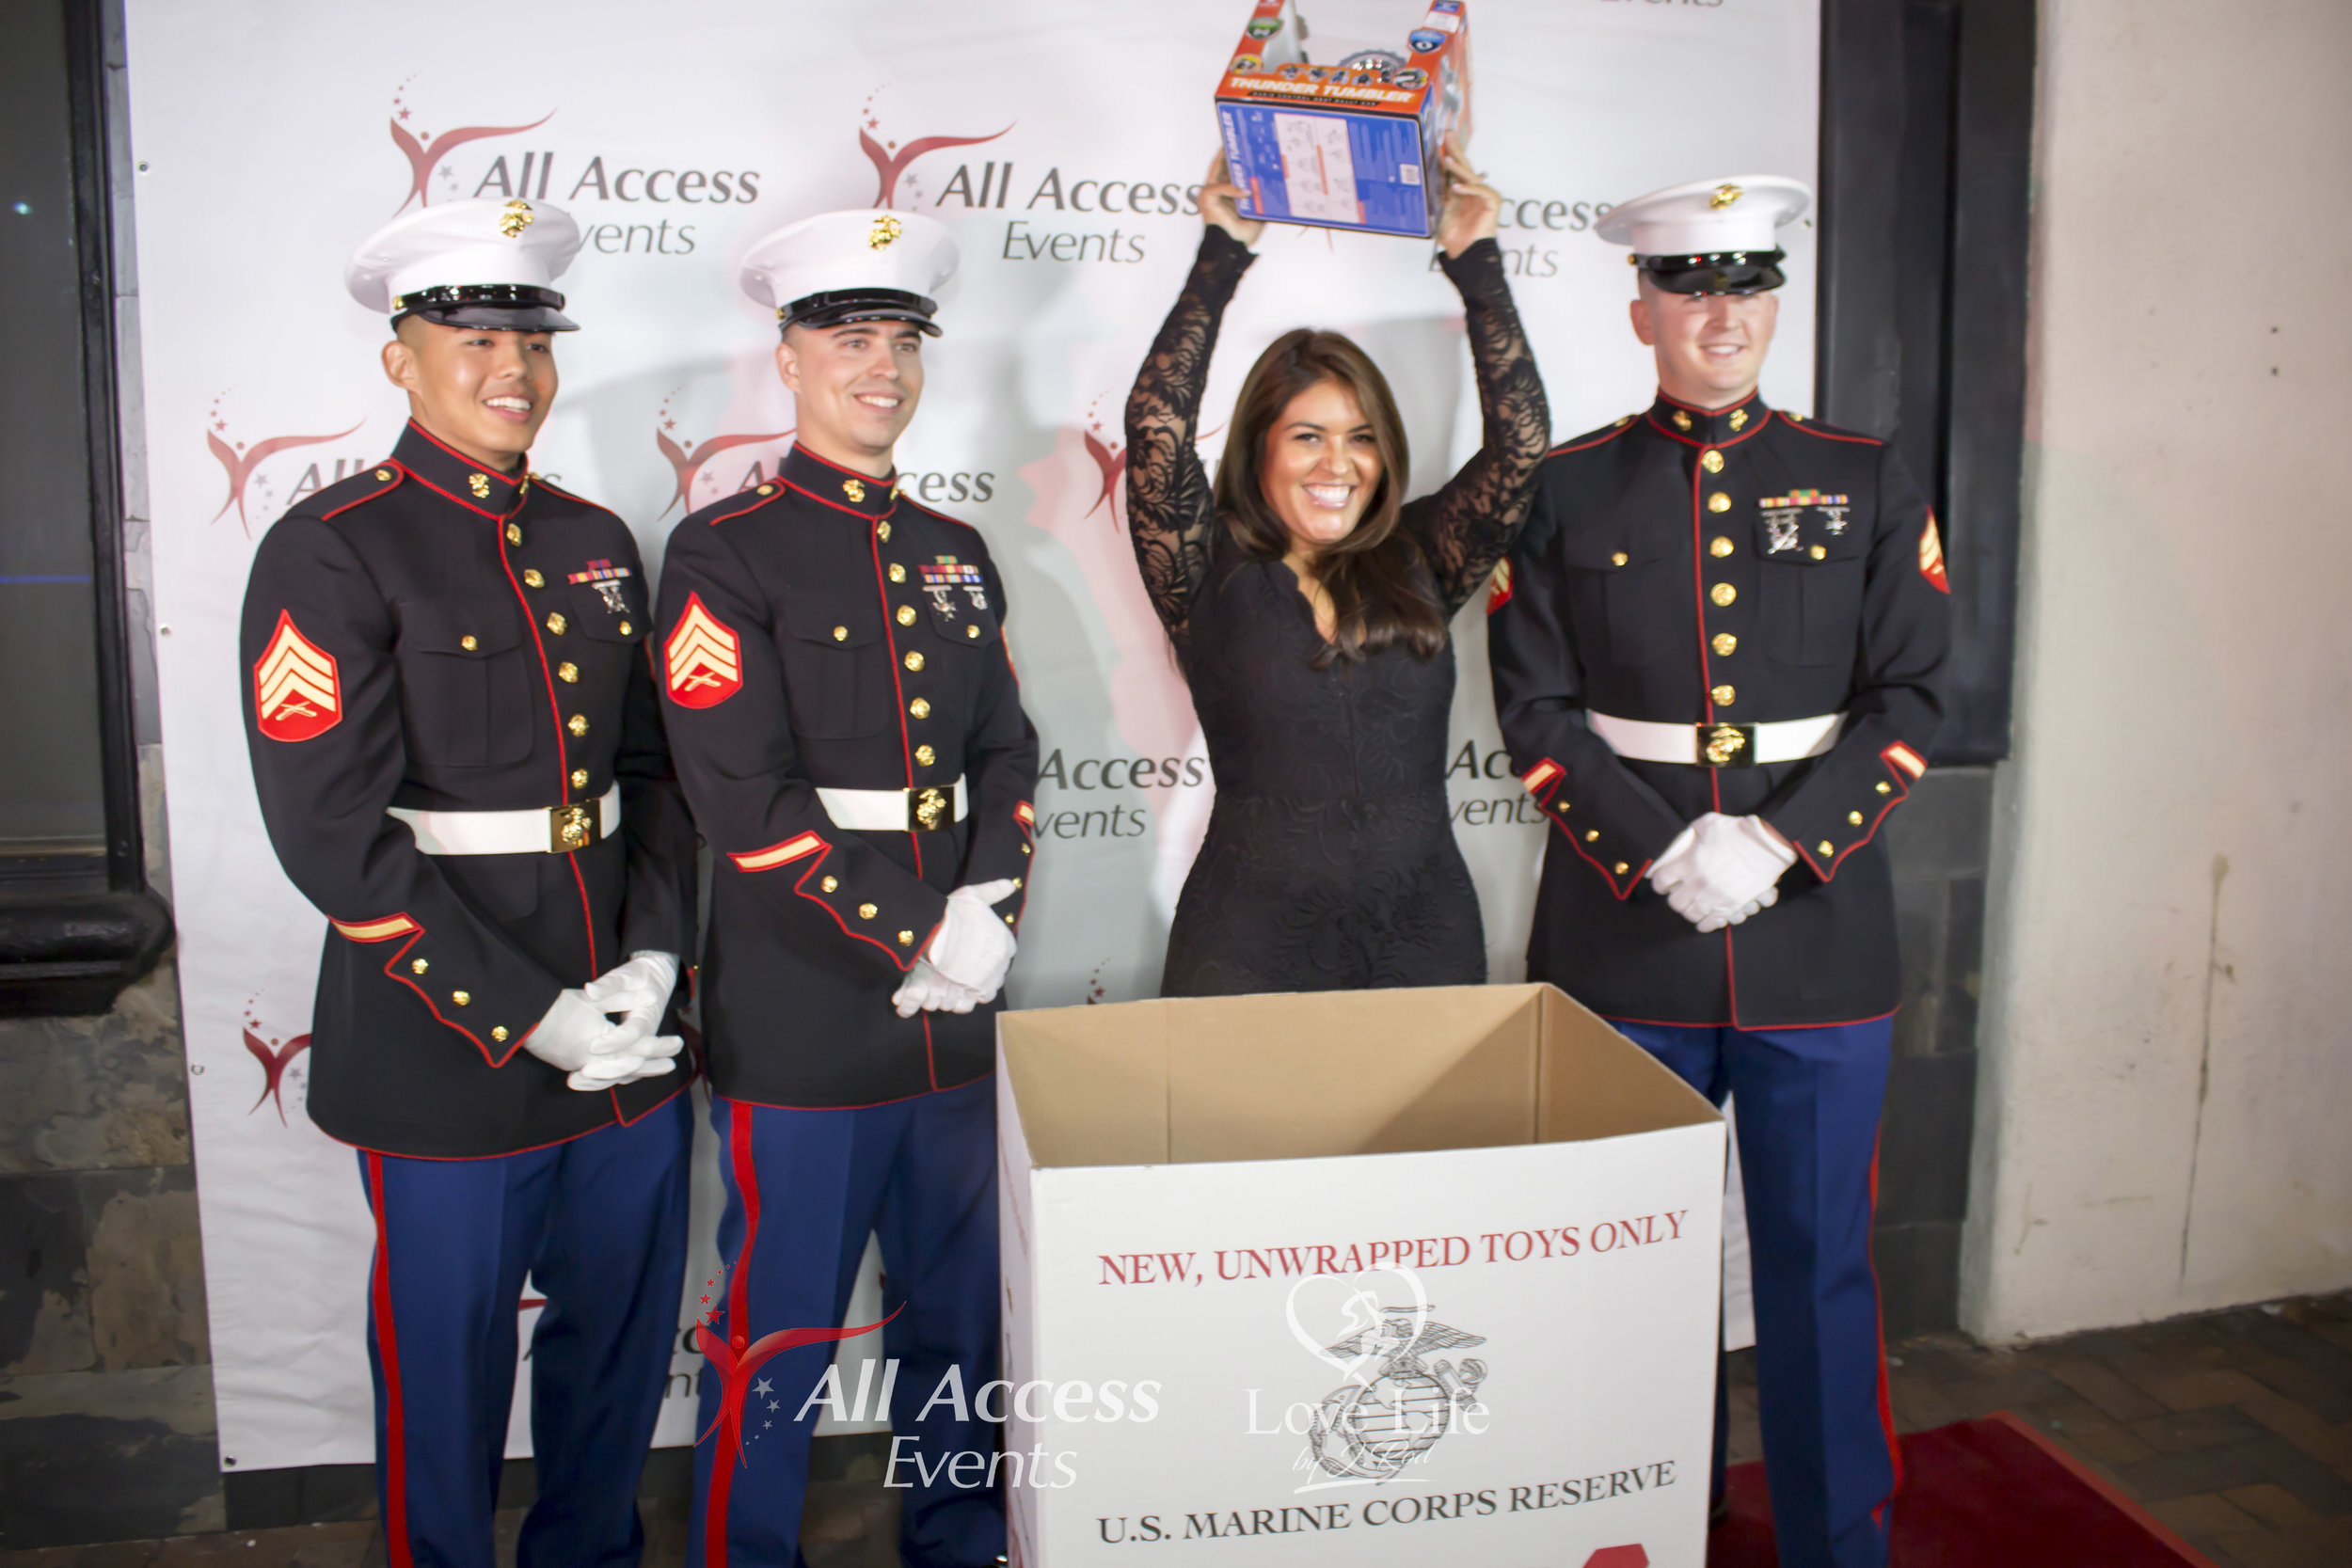 All Access Events Toy Drive - 12-13-17_118.jpg